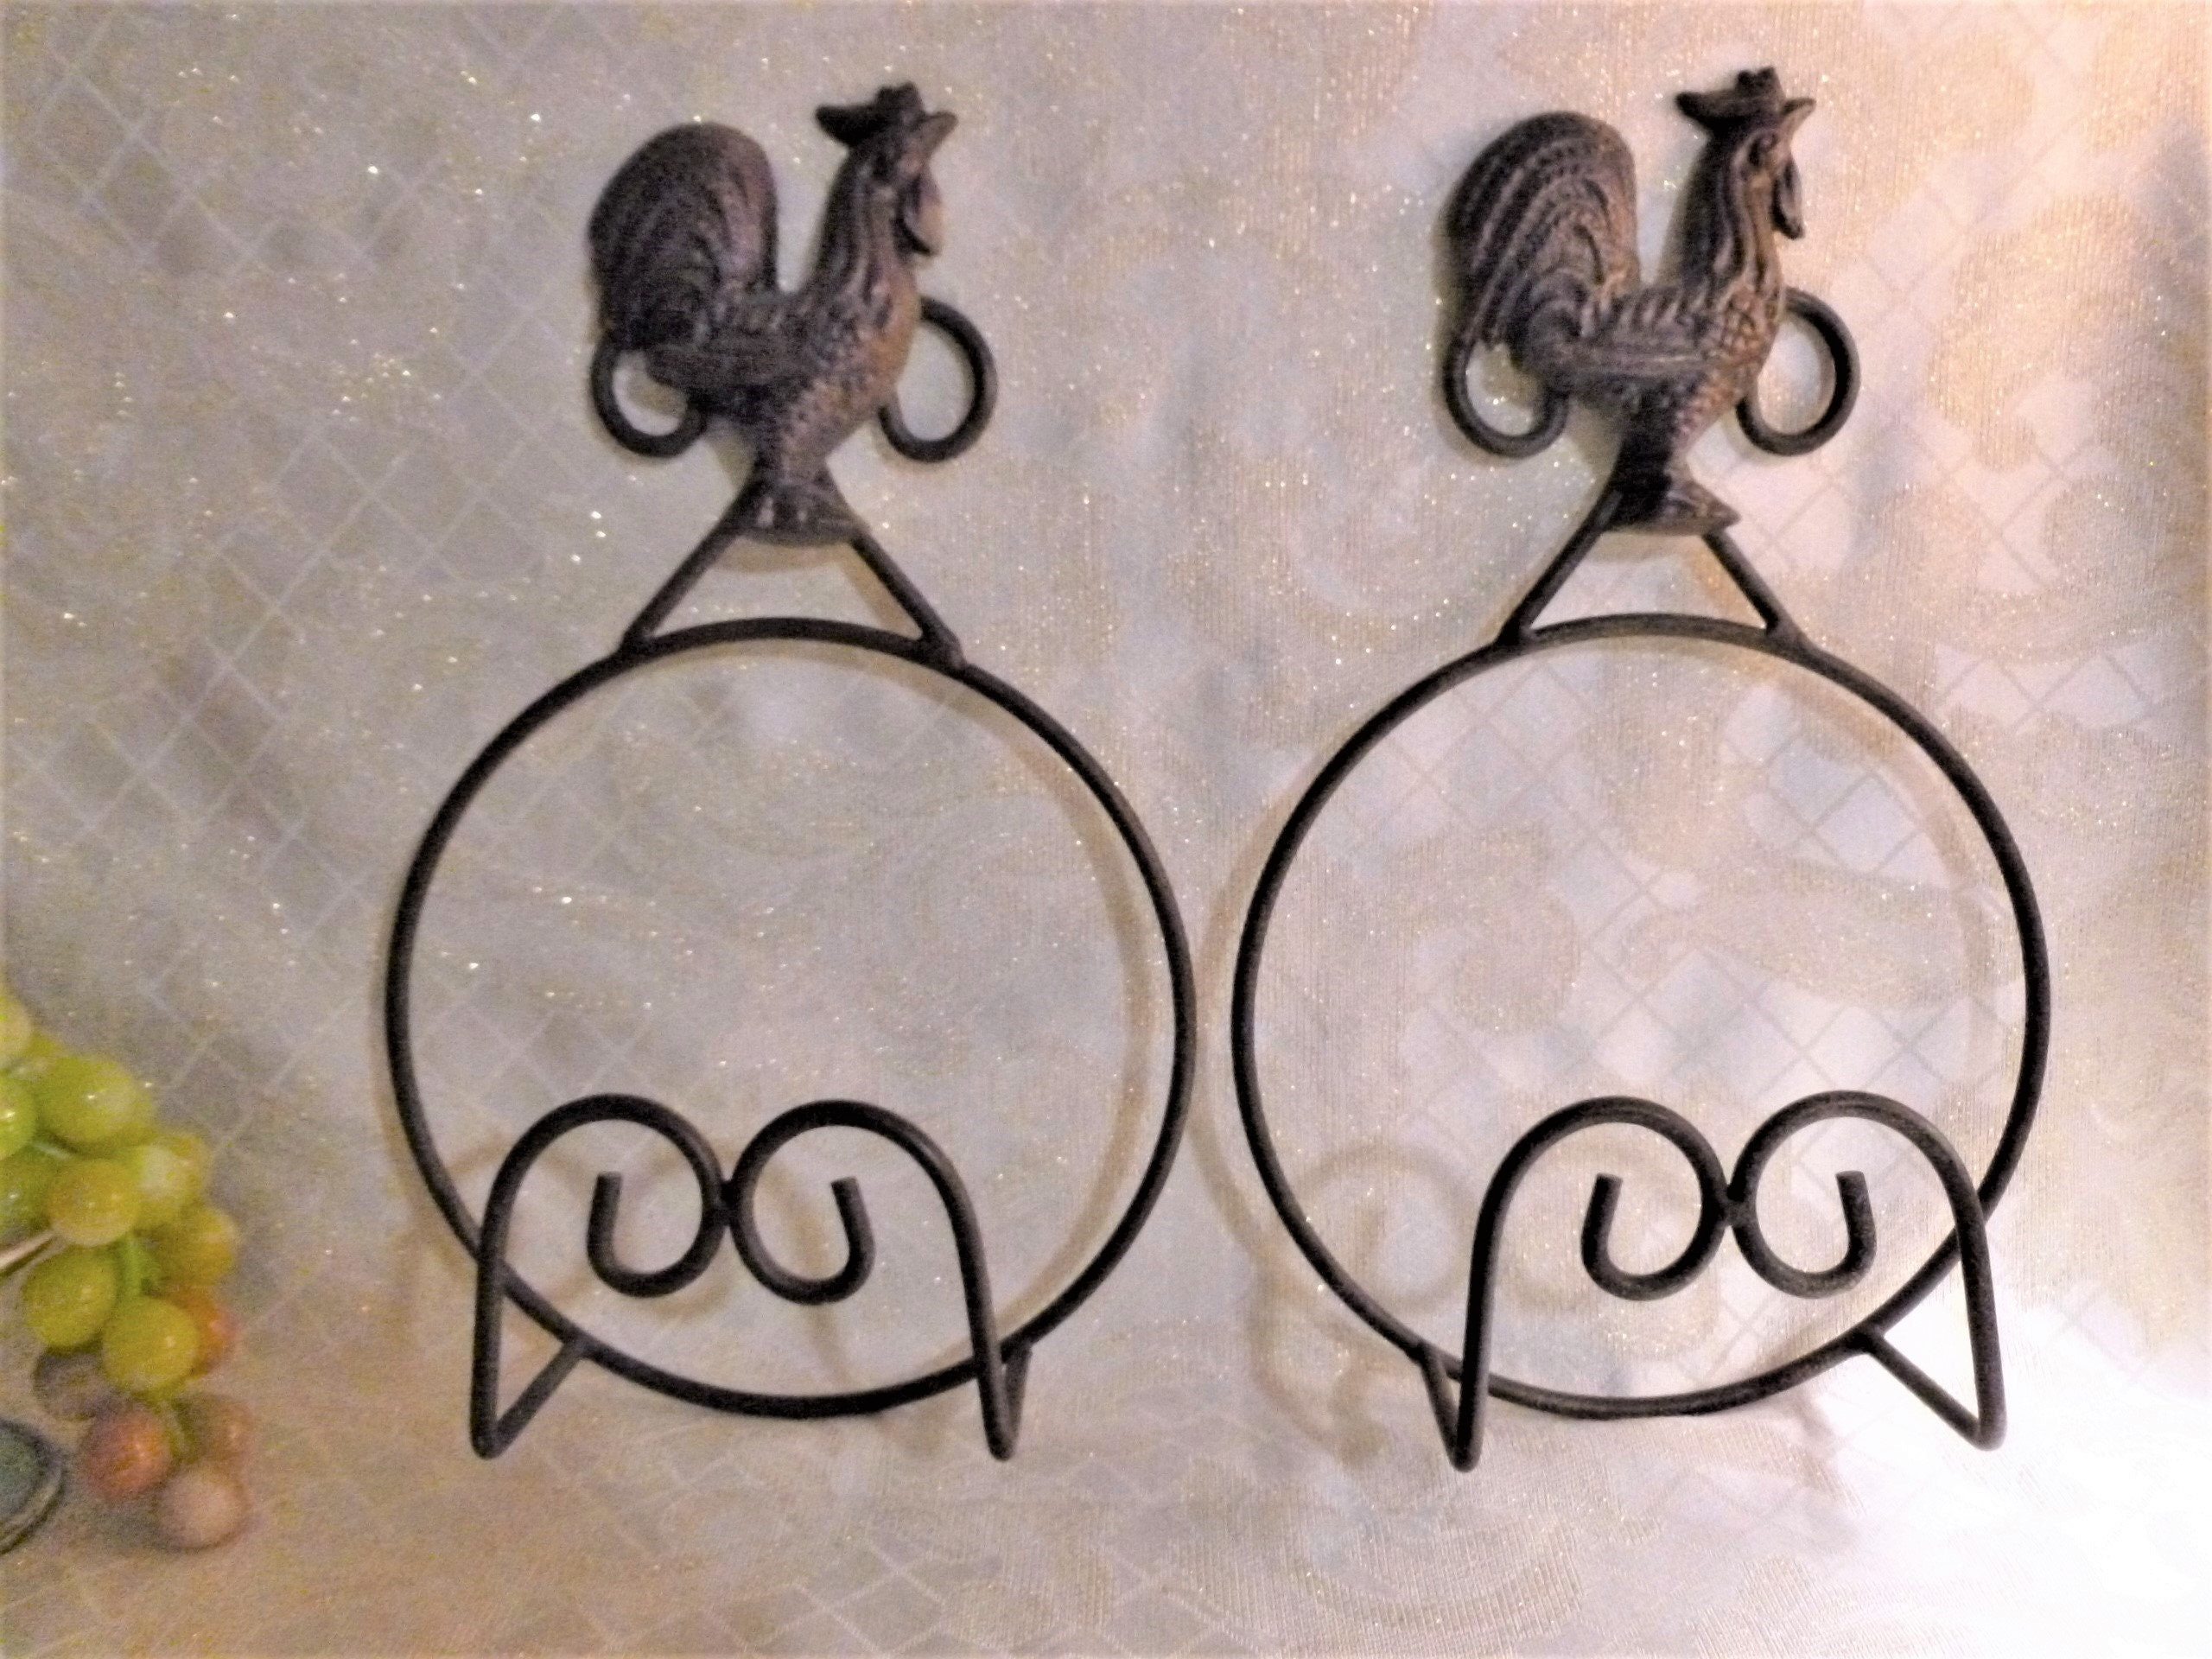 Plate Holders Set Of Two Vintage Rooster Plate Displays Rustic Country Charm Vintage Country Decor Farmhouse Decor Free Domestic Shipping